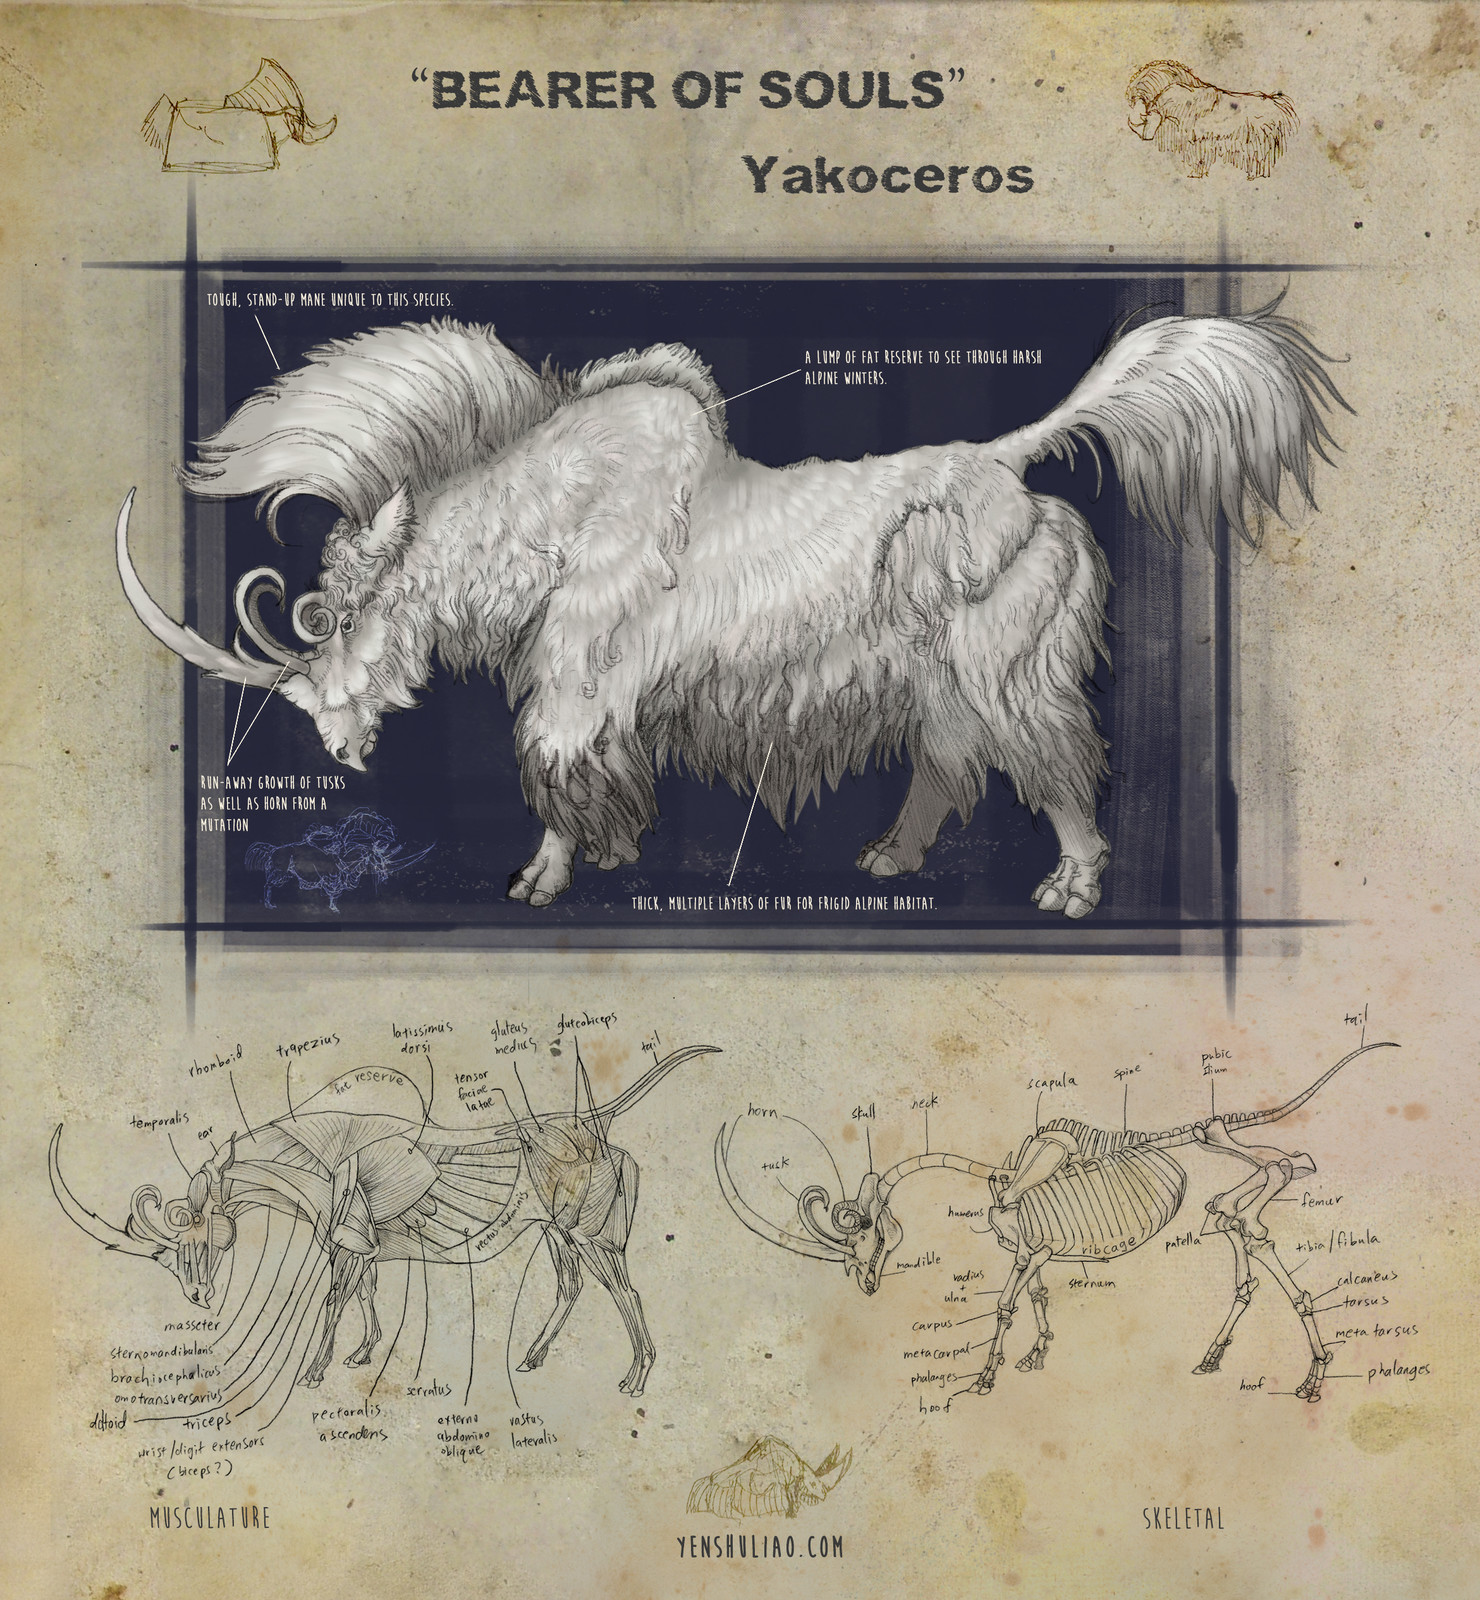 Bearer of Souls